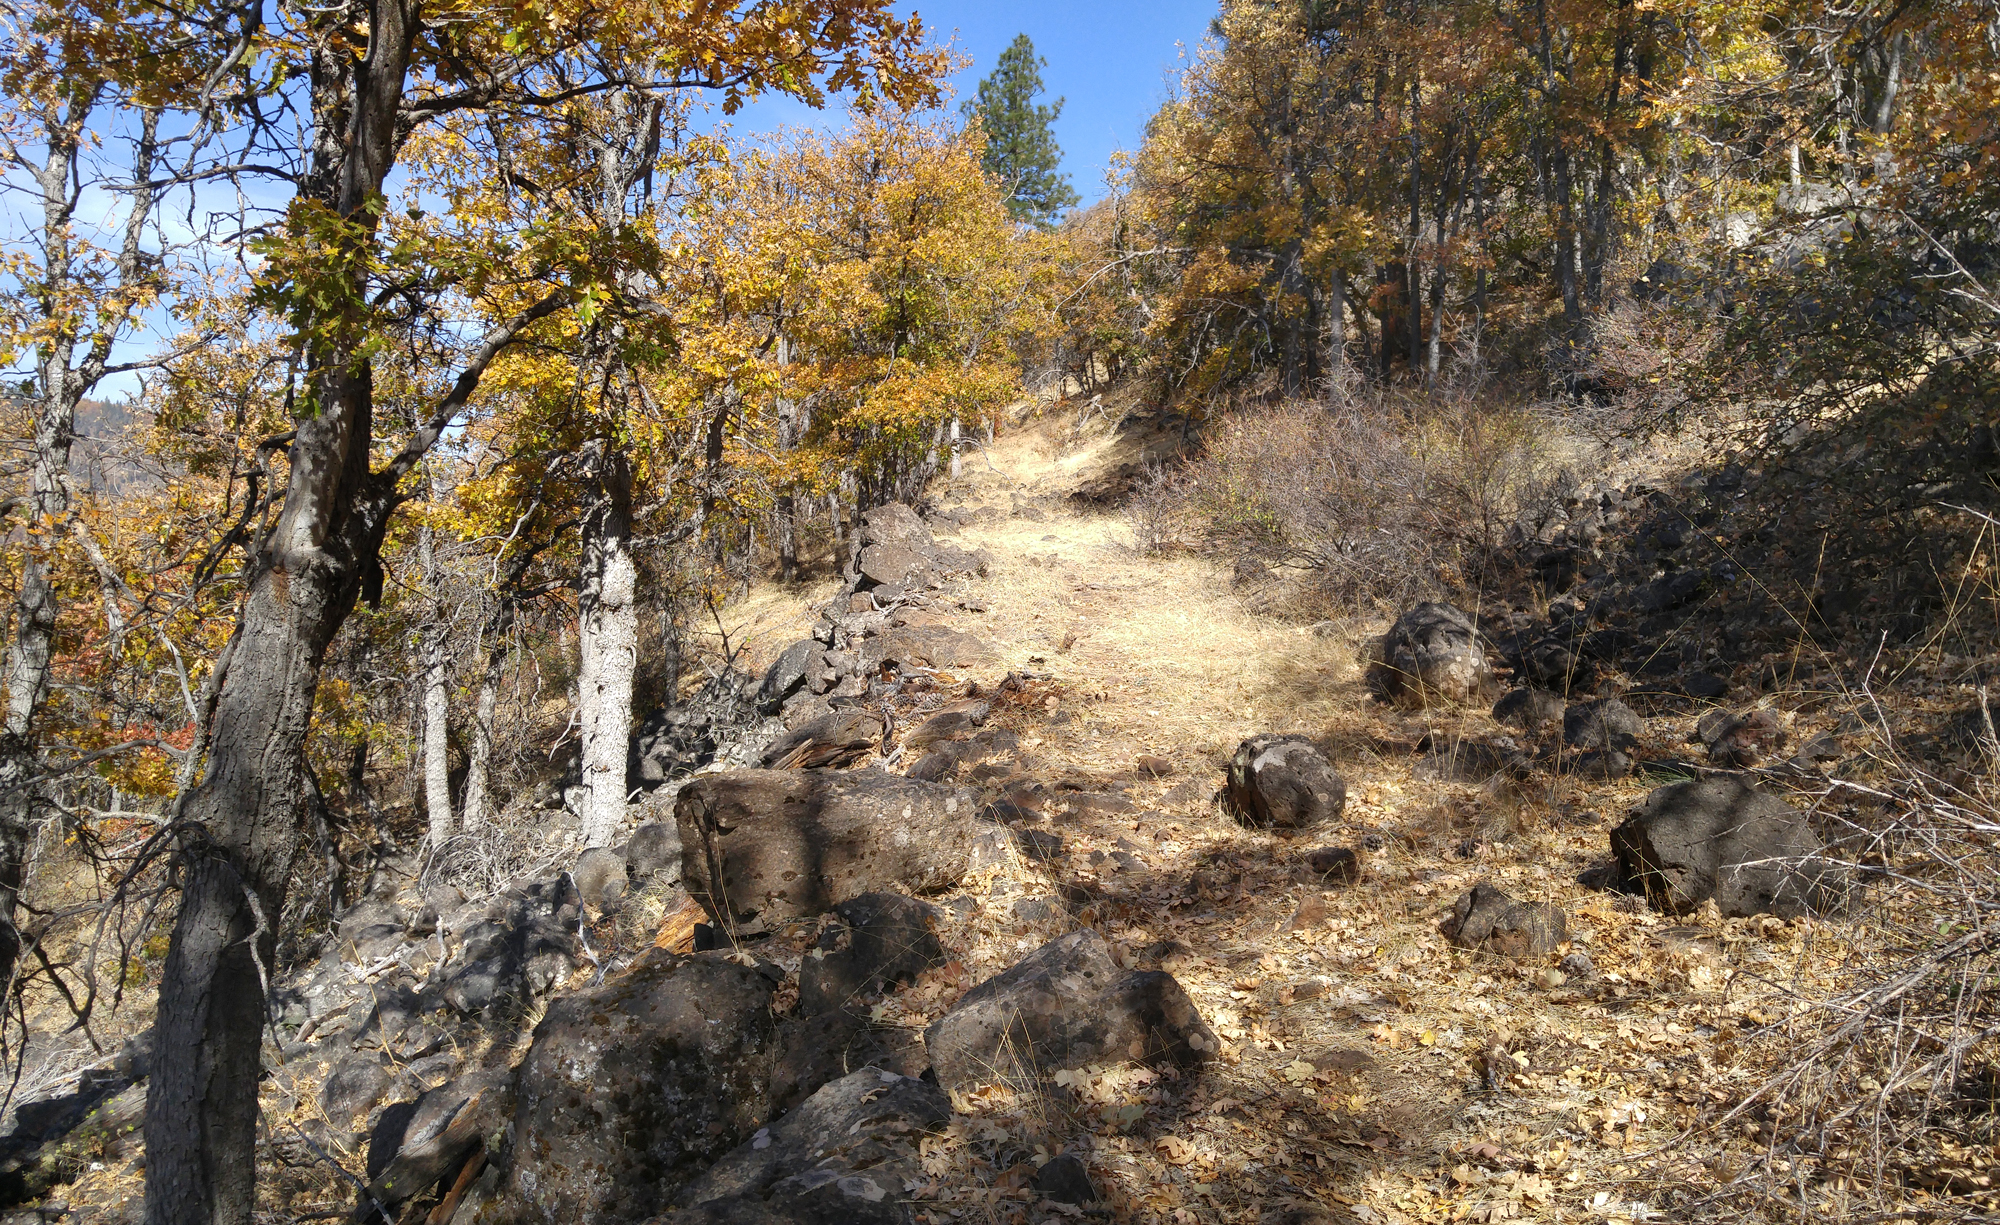 A history hike will explore long-abandoned wagon roads, such as the one shown in this photo, in the Topsy Grade area of the Klamath River canyon. (Klamath County Museum)